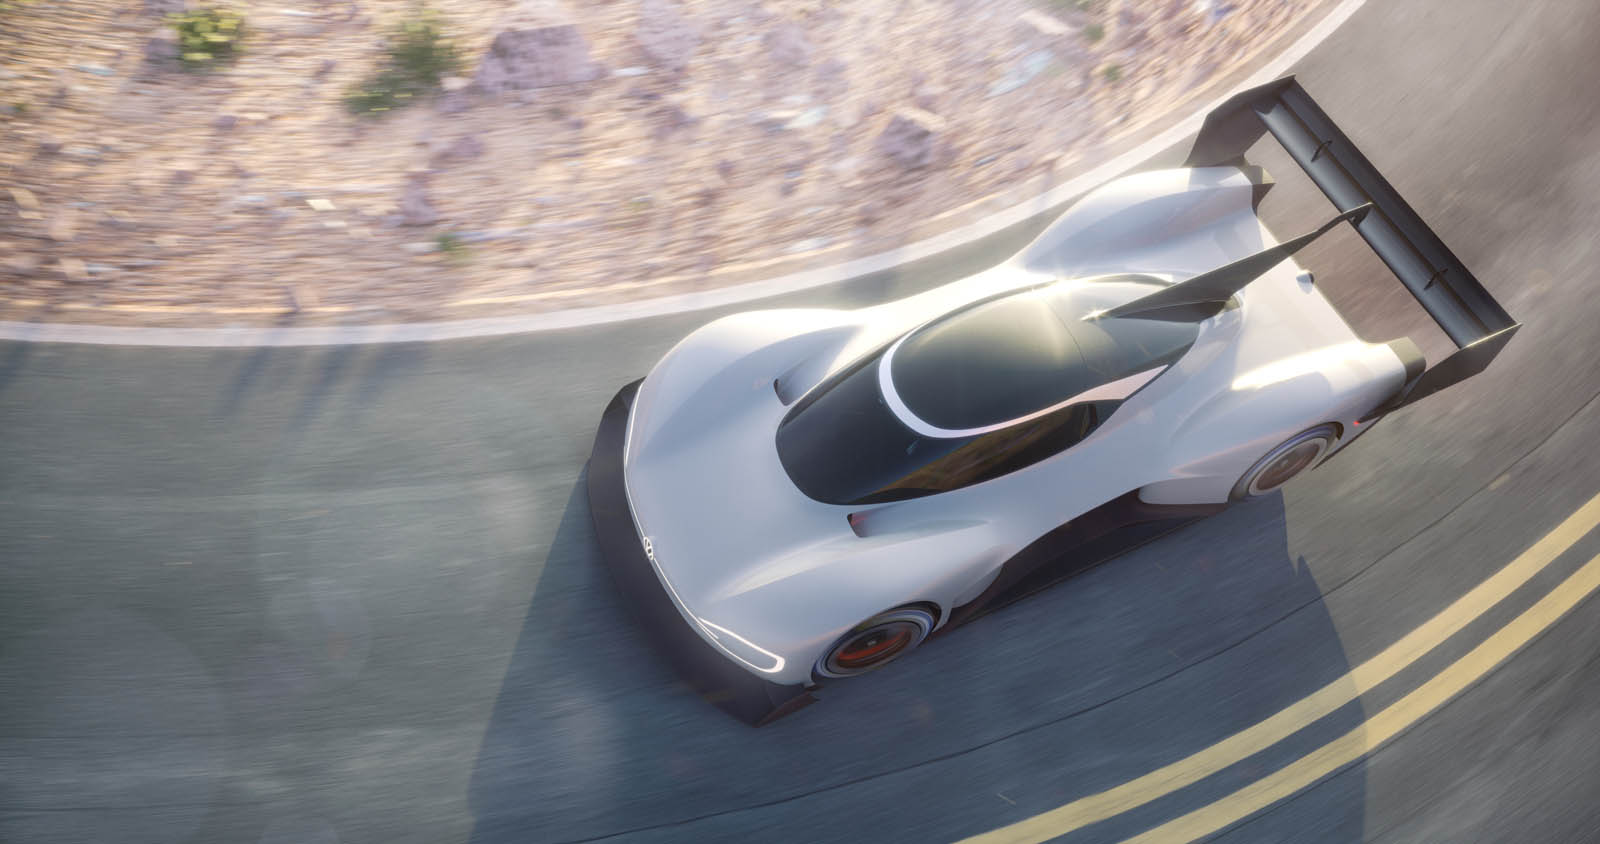 VW announces ID R Pikes Peak challenger